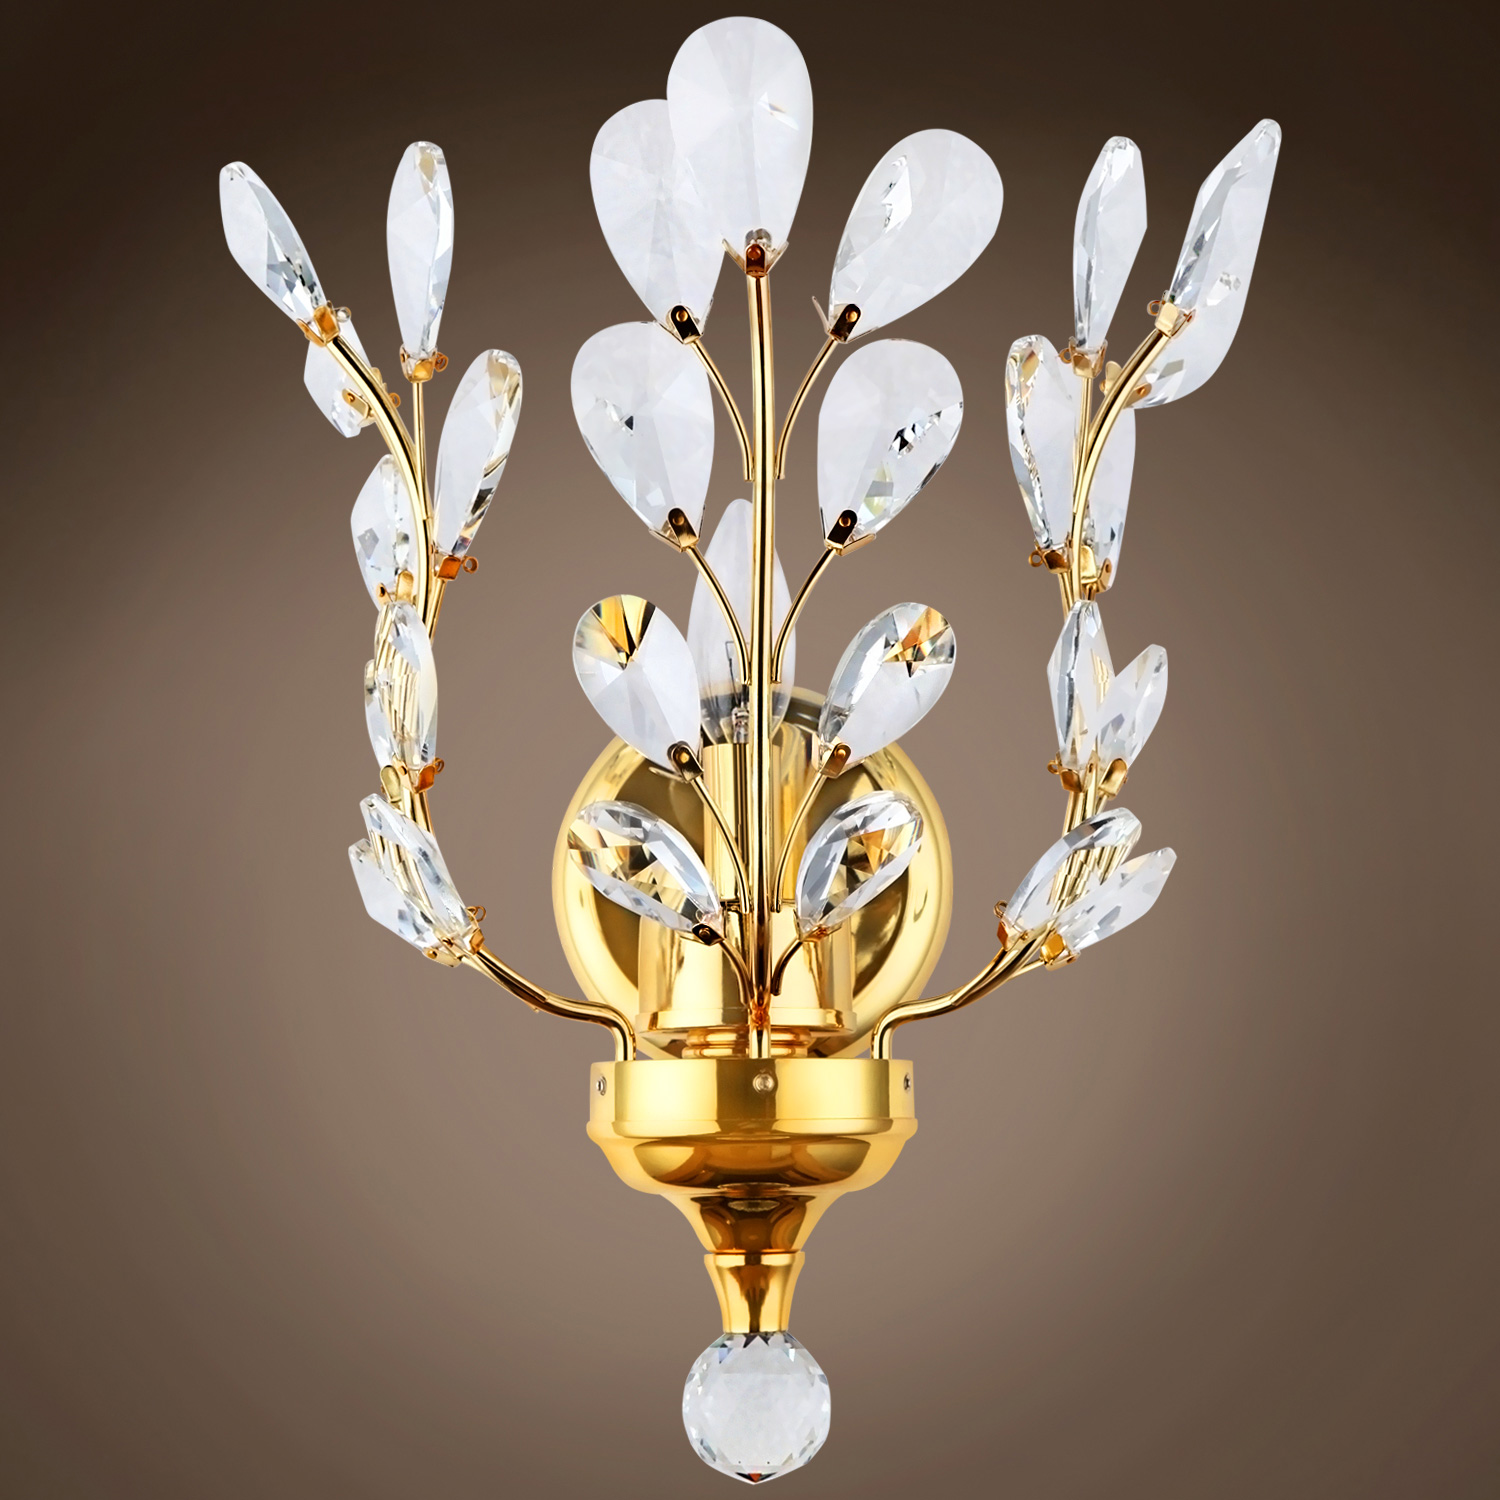 Wall Sconces With Branches : Joshua Marshal 700864 Branch of Light 1 Light Gold Wall Sconce with Crystals From Branch of ...